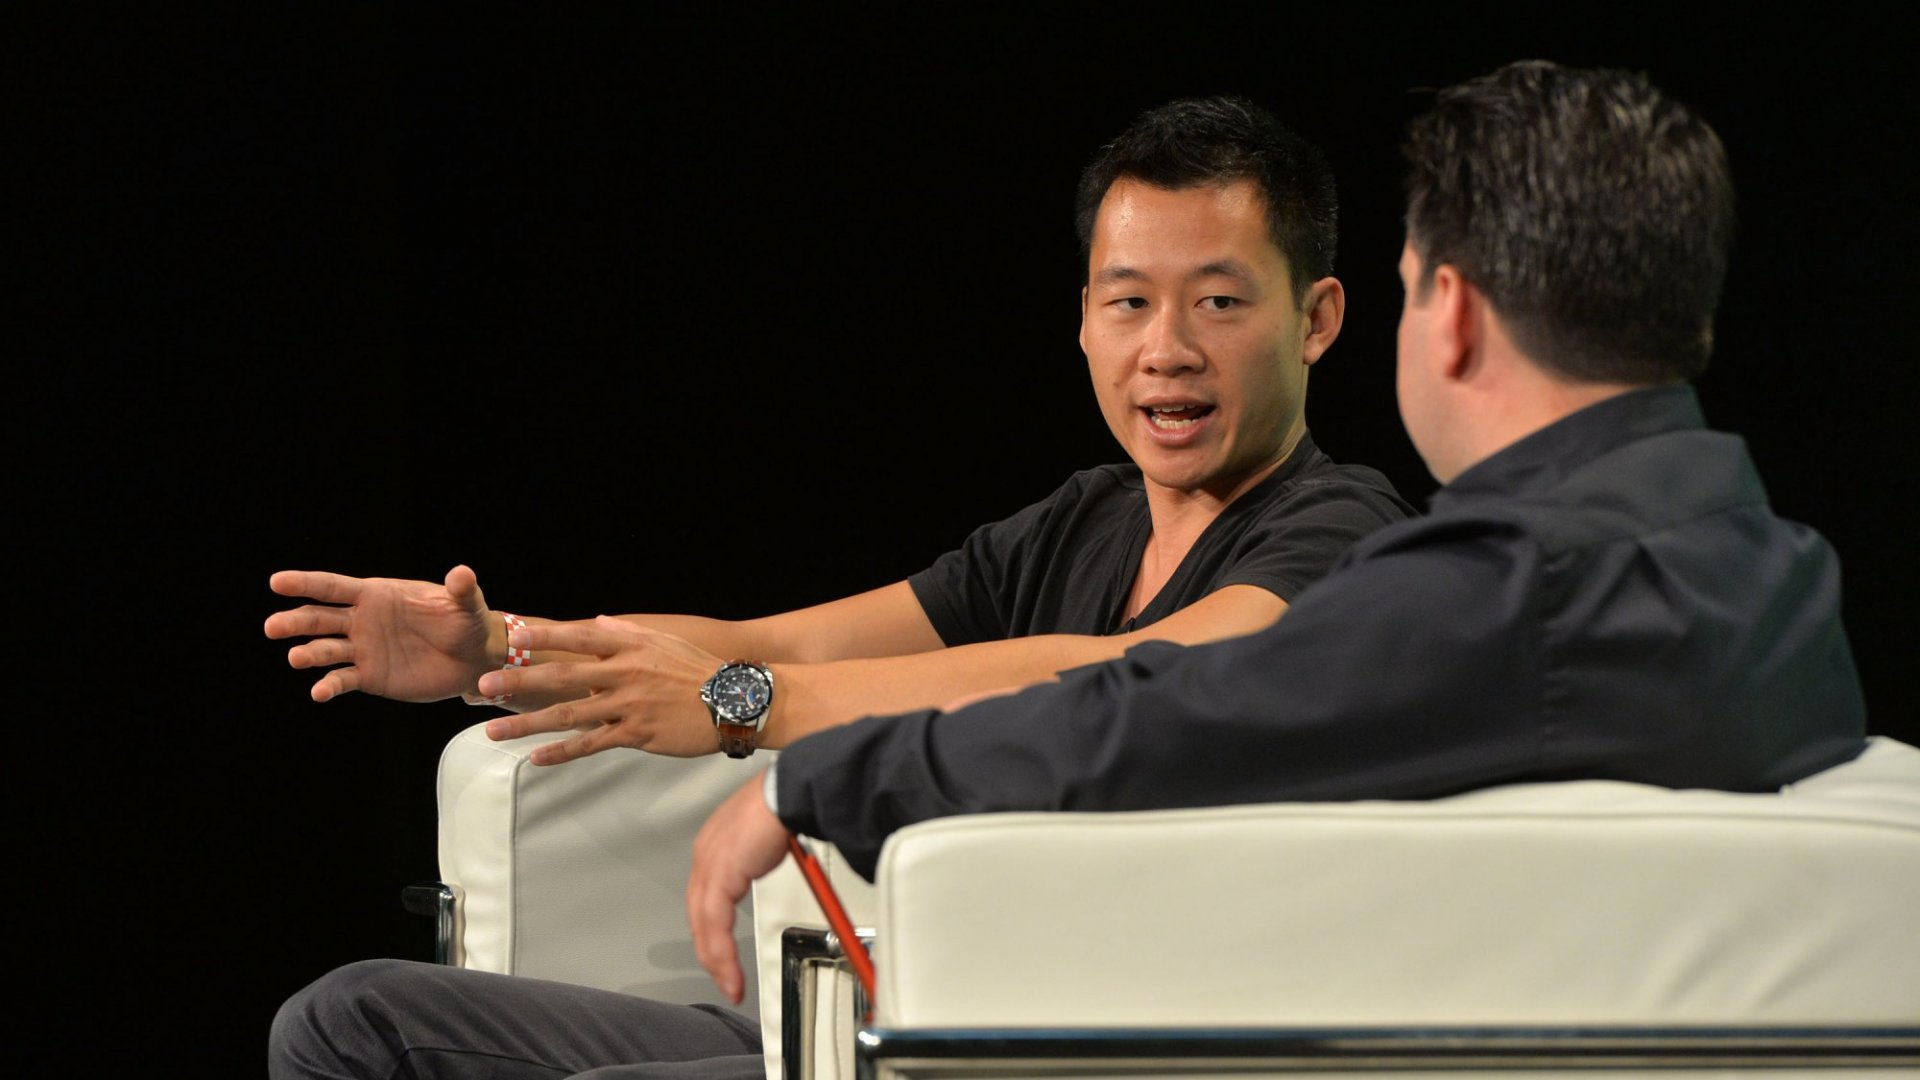 How Twitch Founder Saved His Startup by Ordering Pizza